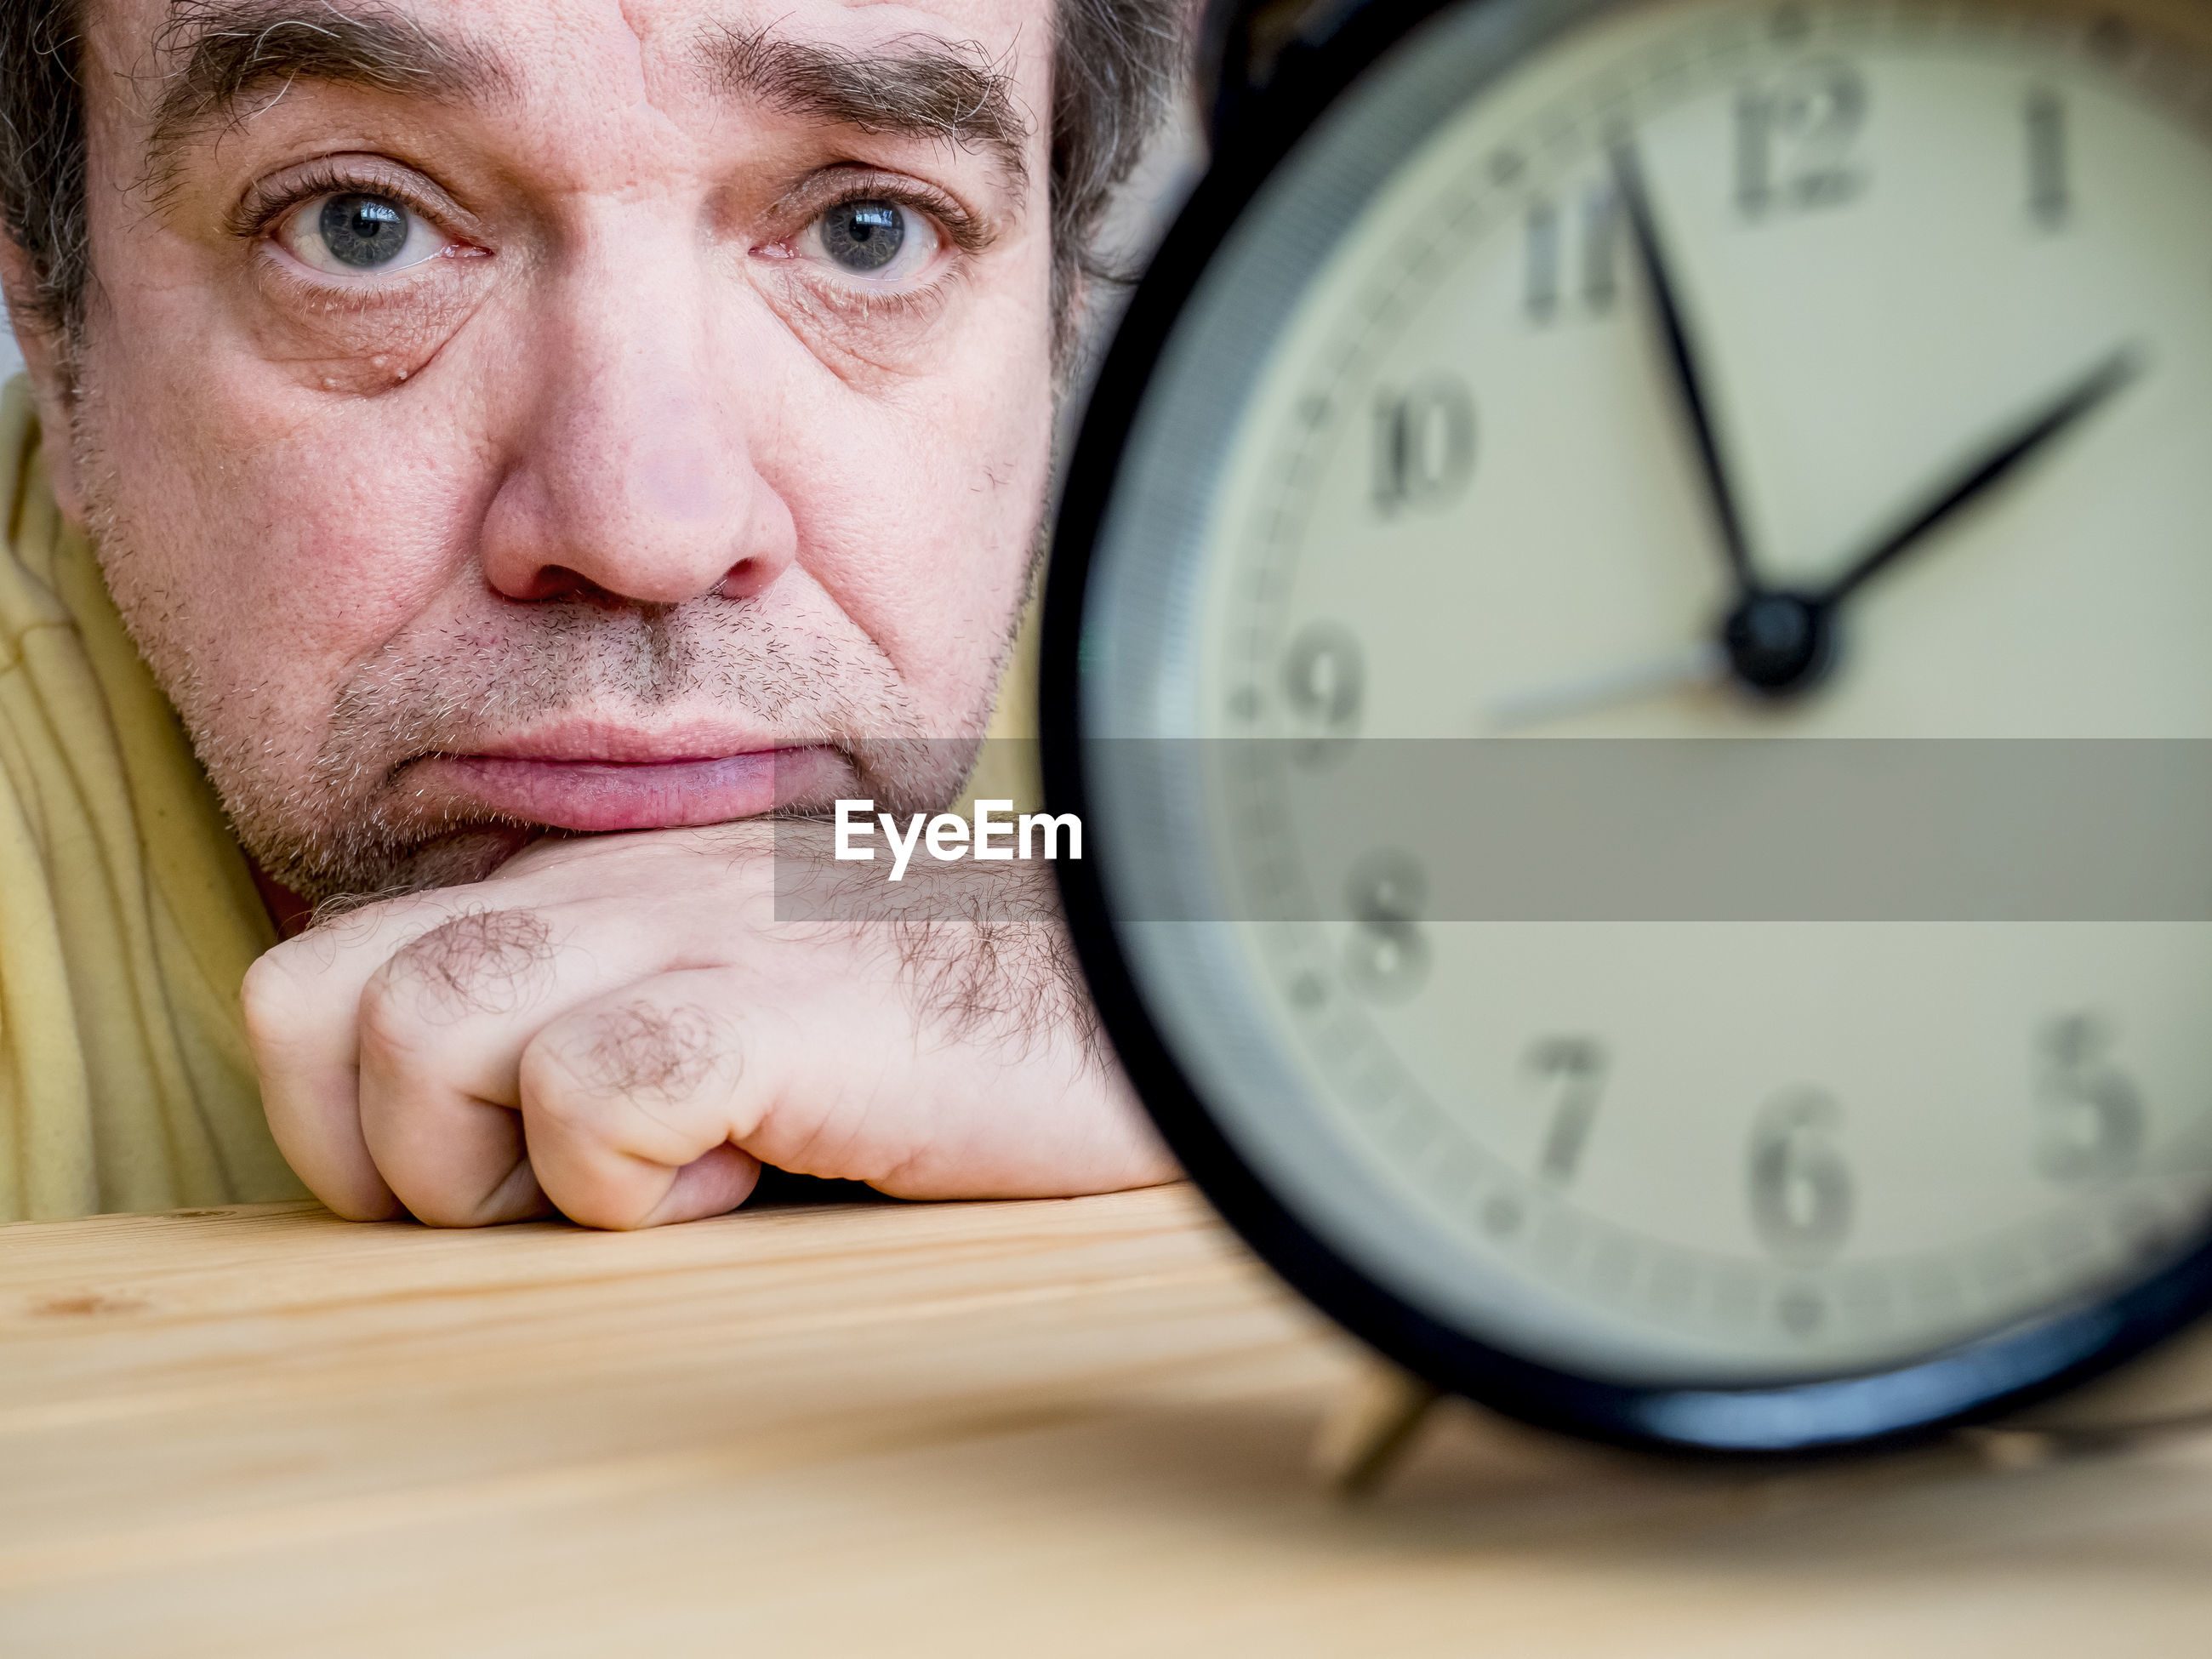 Close-up alarm clock on table with man in background